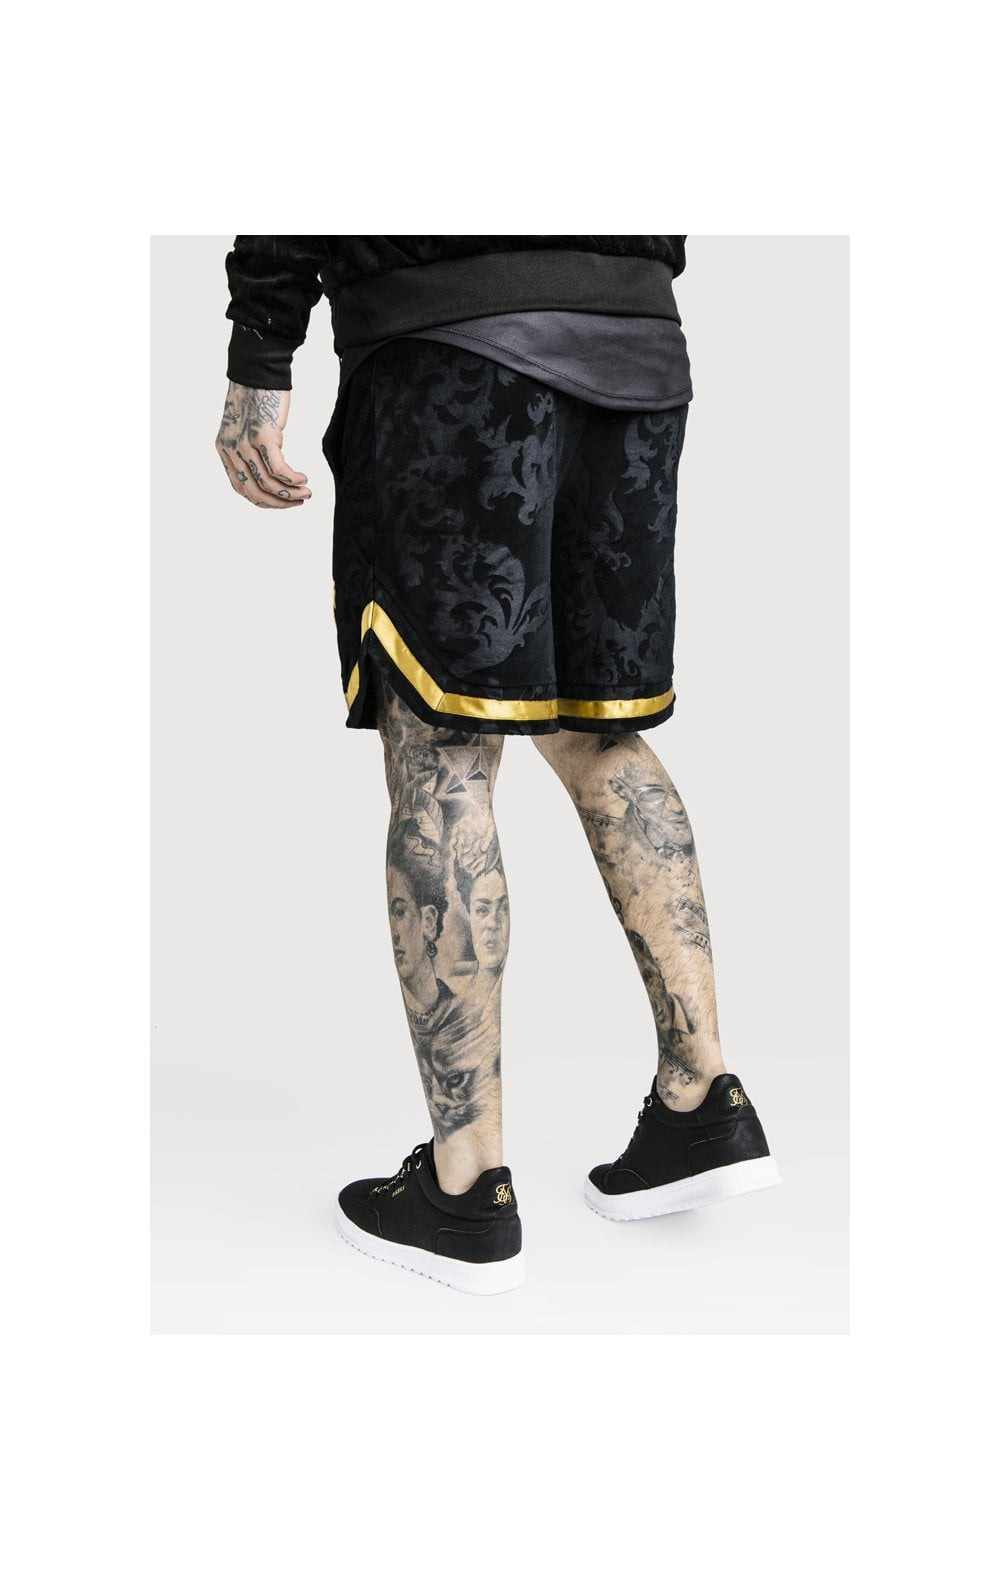 Load image into Gallery viewer, SikSilk x Dani Alves Velour Baseball Shorts - Black (5)